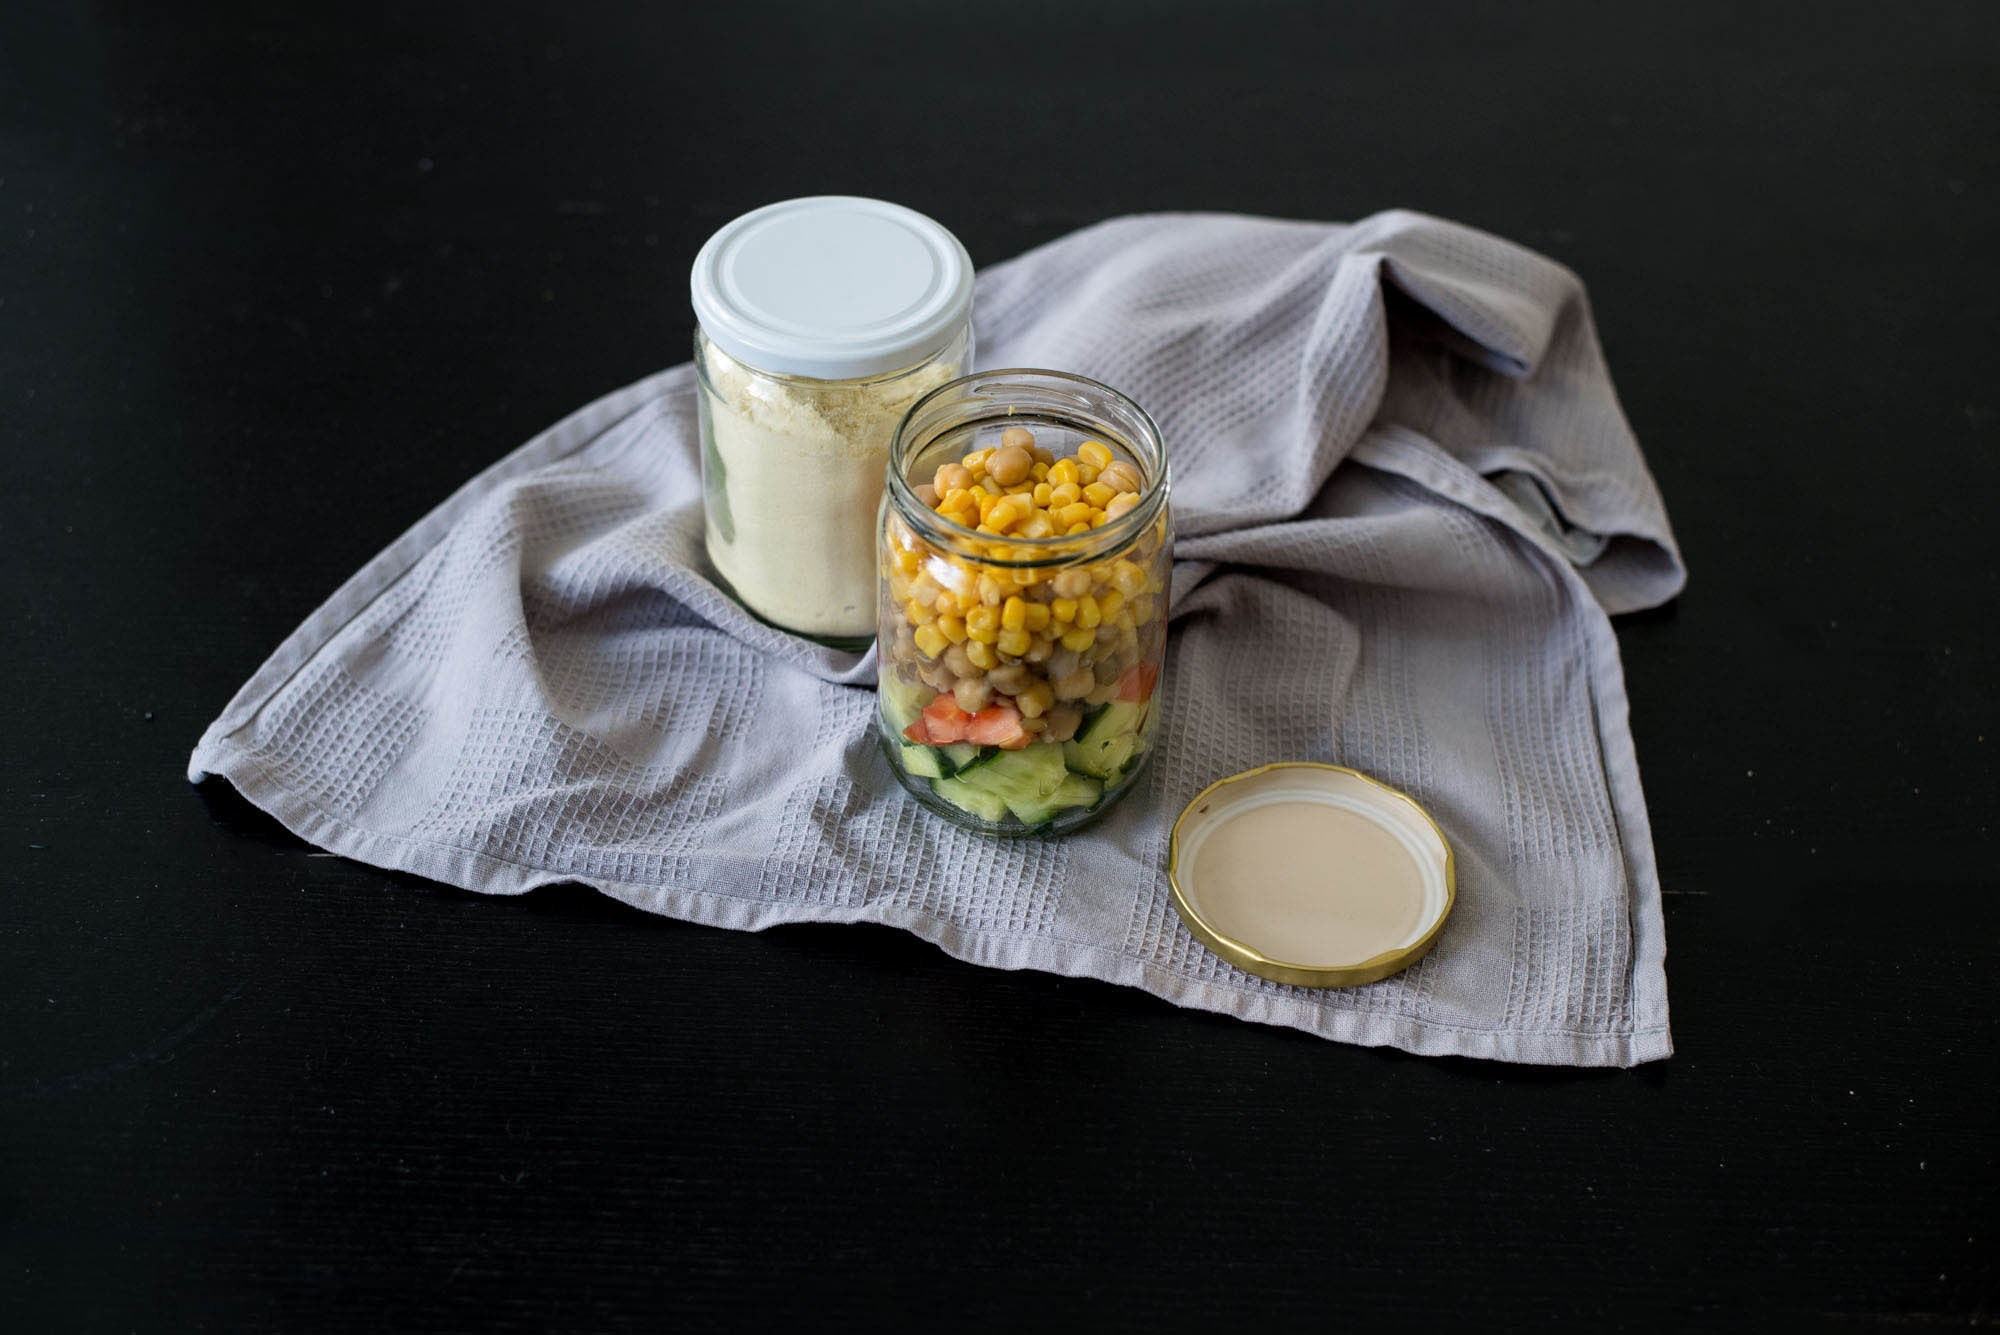 How to avoid food waste when on Erasmus: Take your food in jars with you